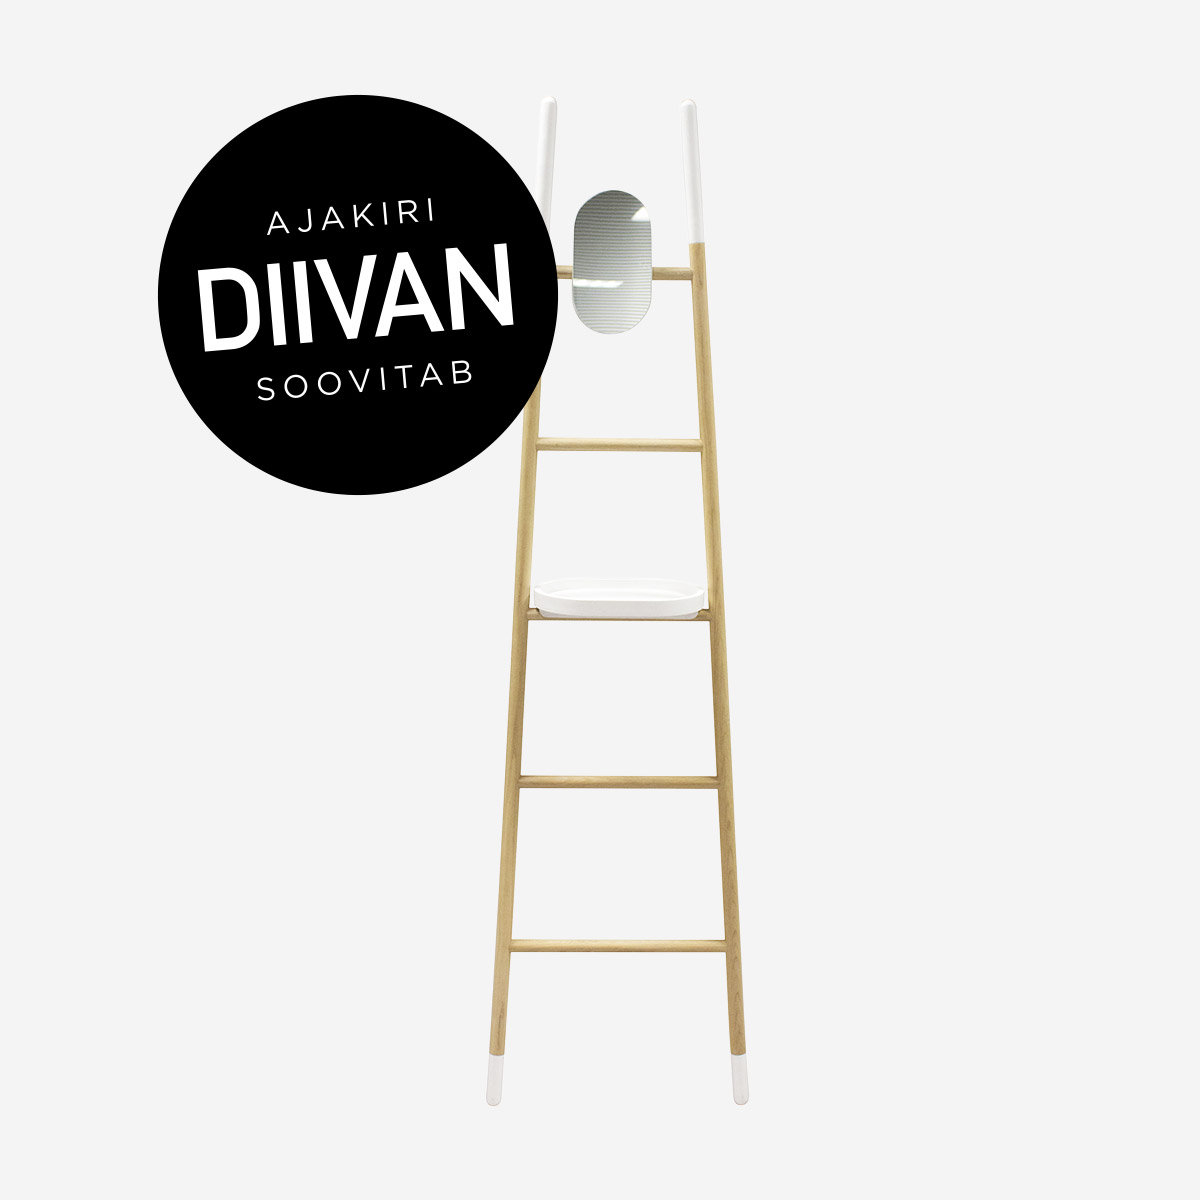 Clothes rack Arlette, magazine Diivan